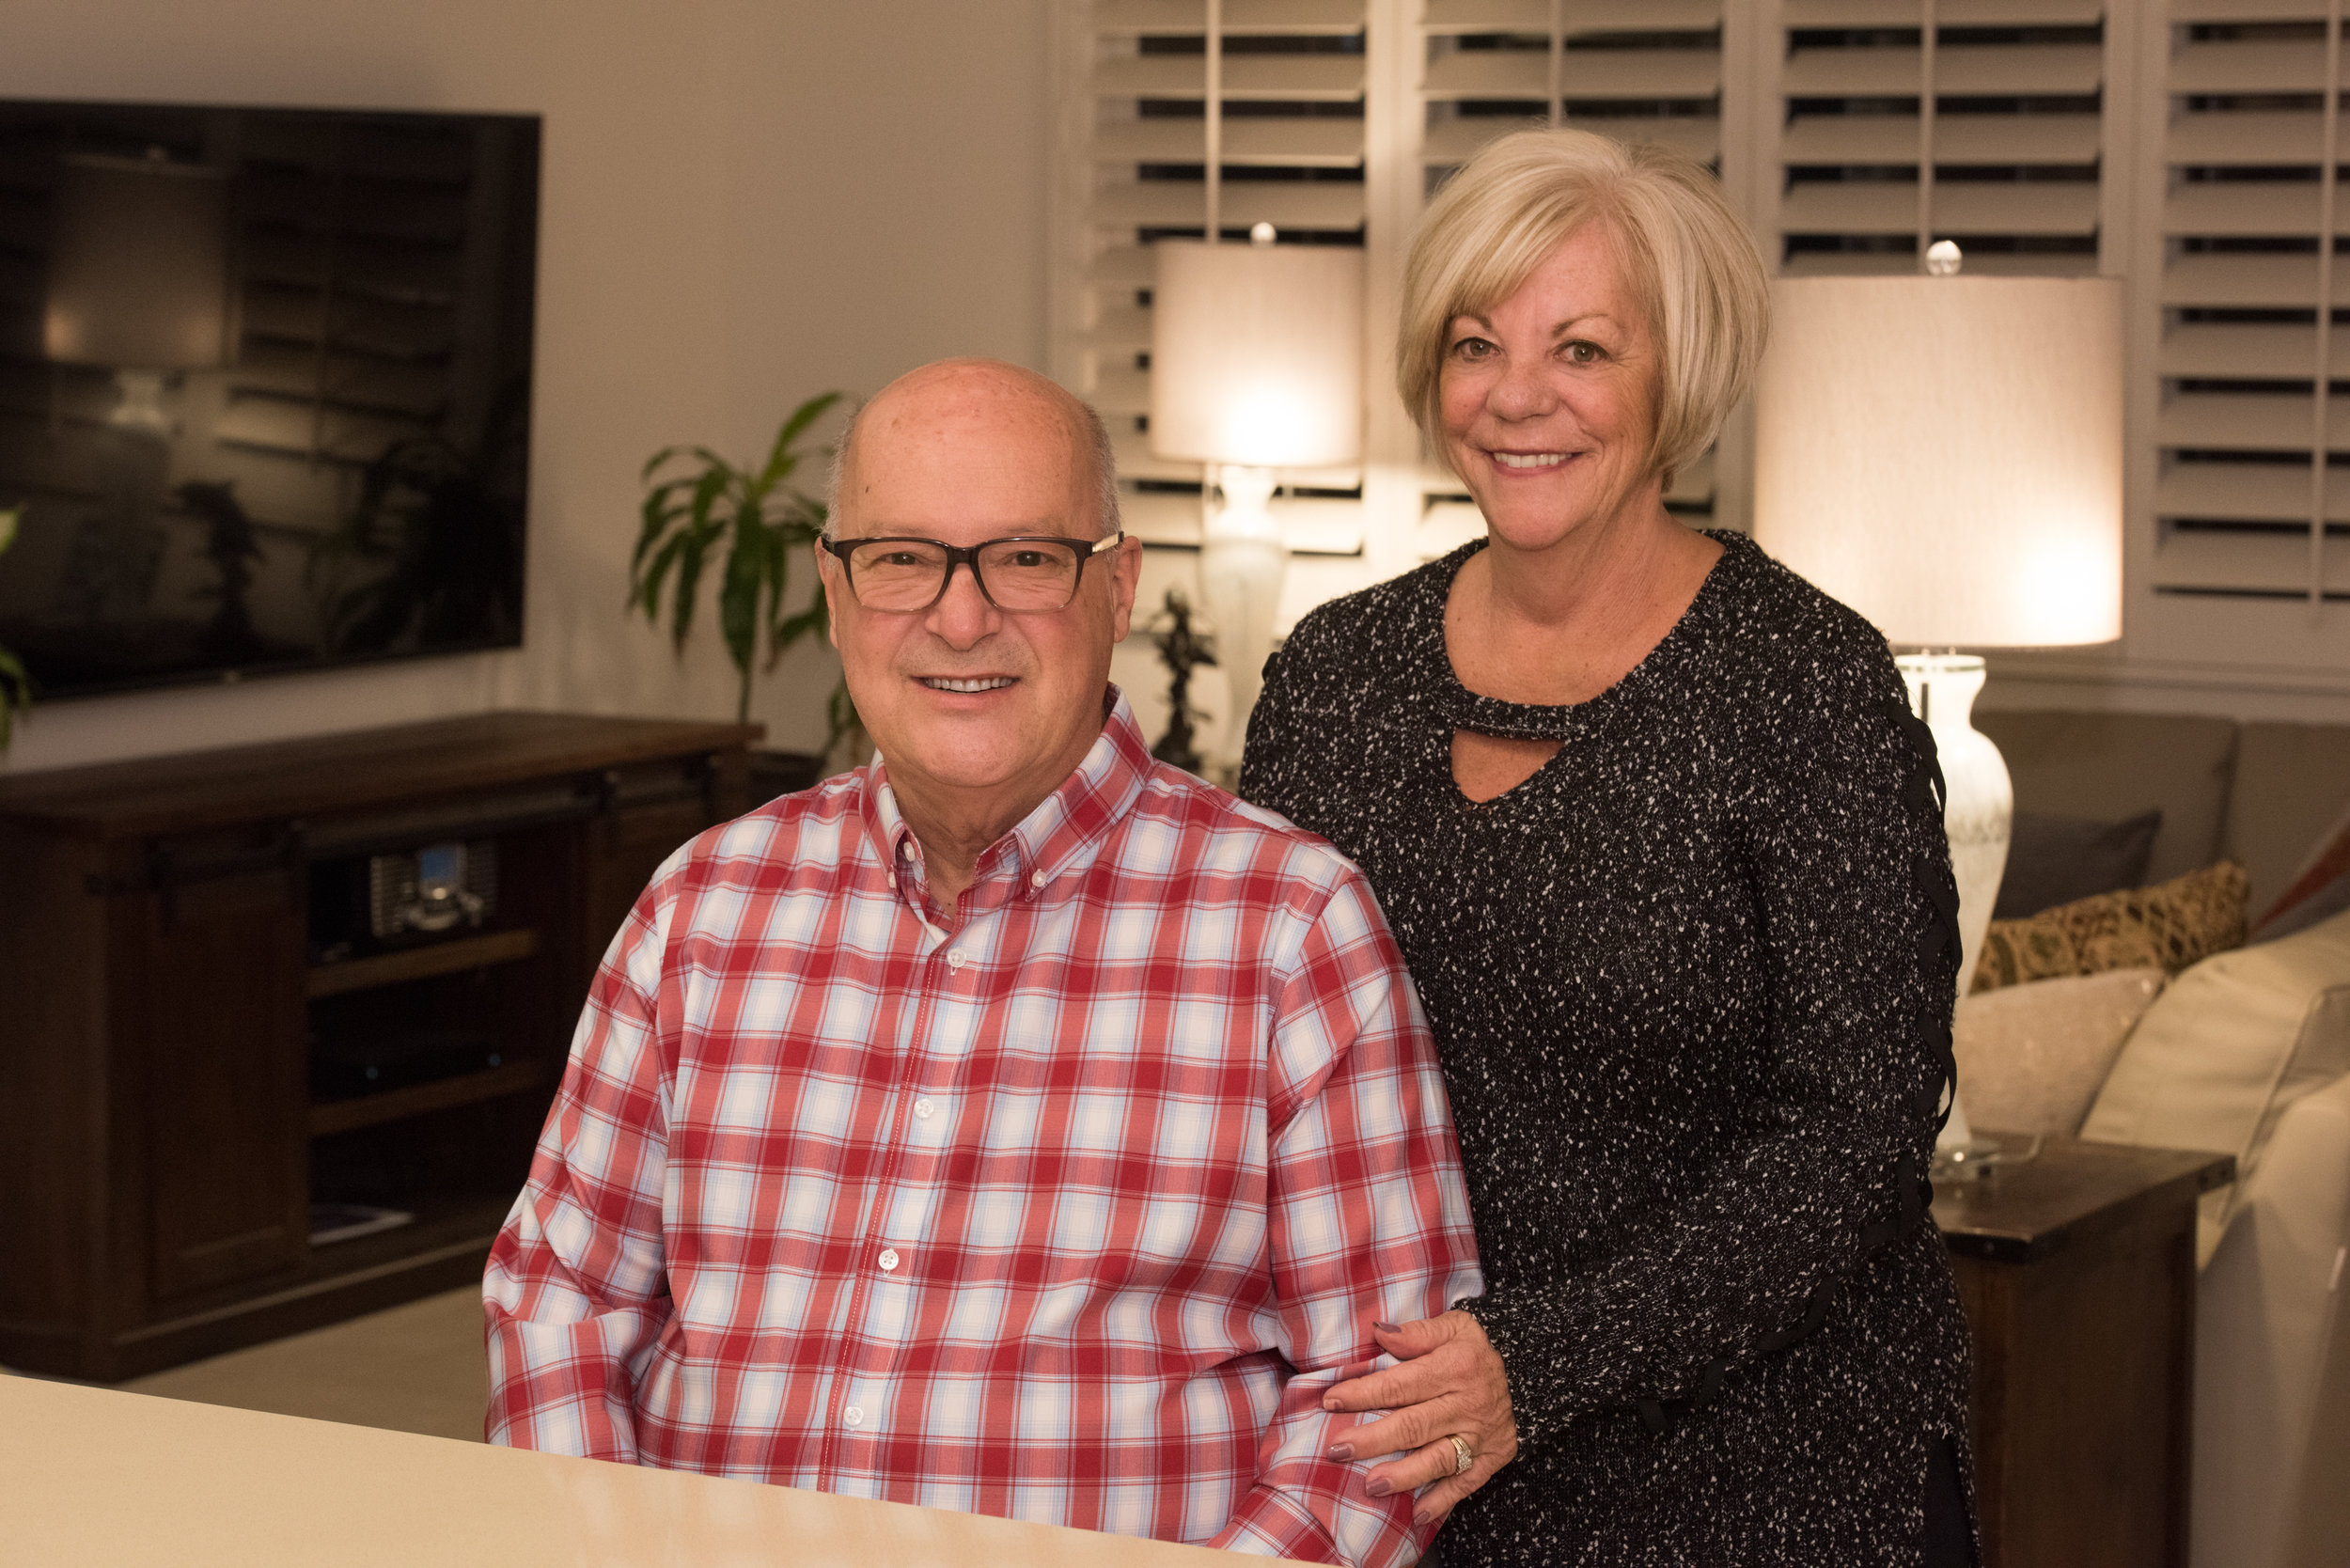 Louis and Lynne in their Domani home.  (Photo Credit: Daniel J. Eslinger)